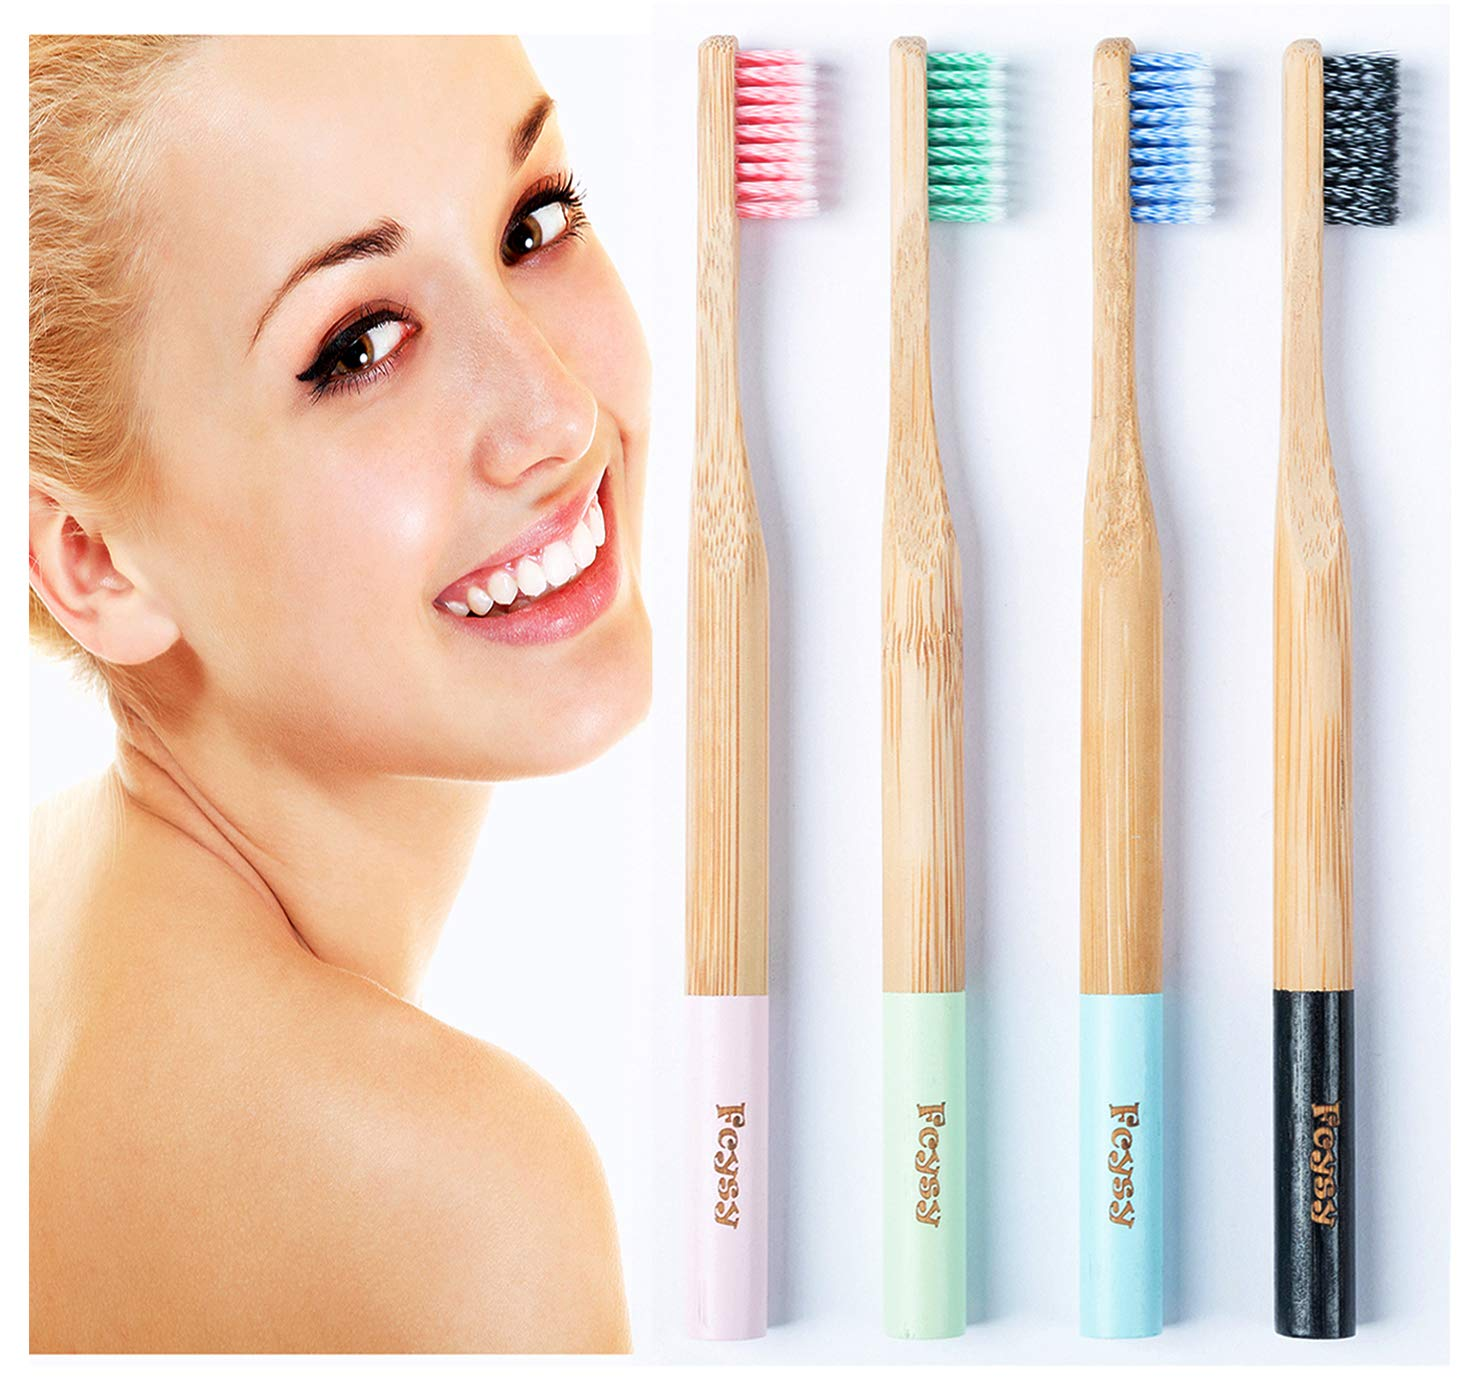 Bamboo Toothbrush Biodegradable Soft Toothbrushes- Fcysy Natural Bamboo Eco Friendly Toothbrush with Soft BPA-Free Germany Imported Spiral Nylon Bristles, Best Recyclable Travel Wood Toothbrush Set